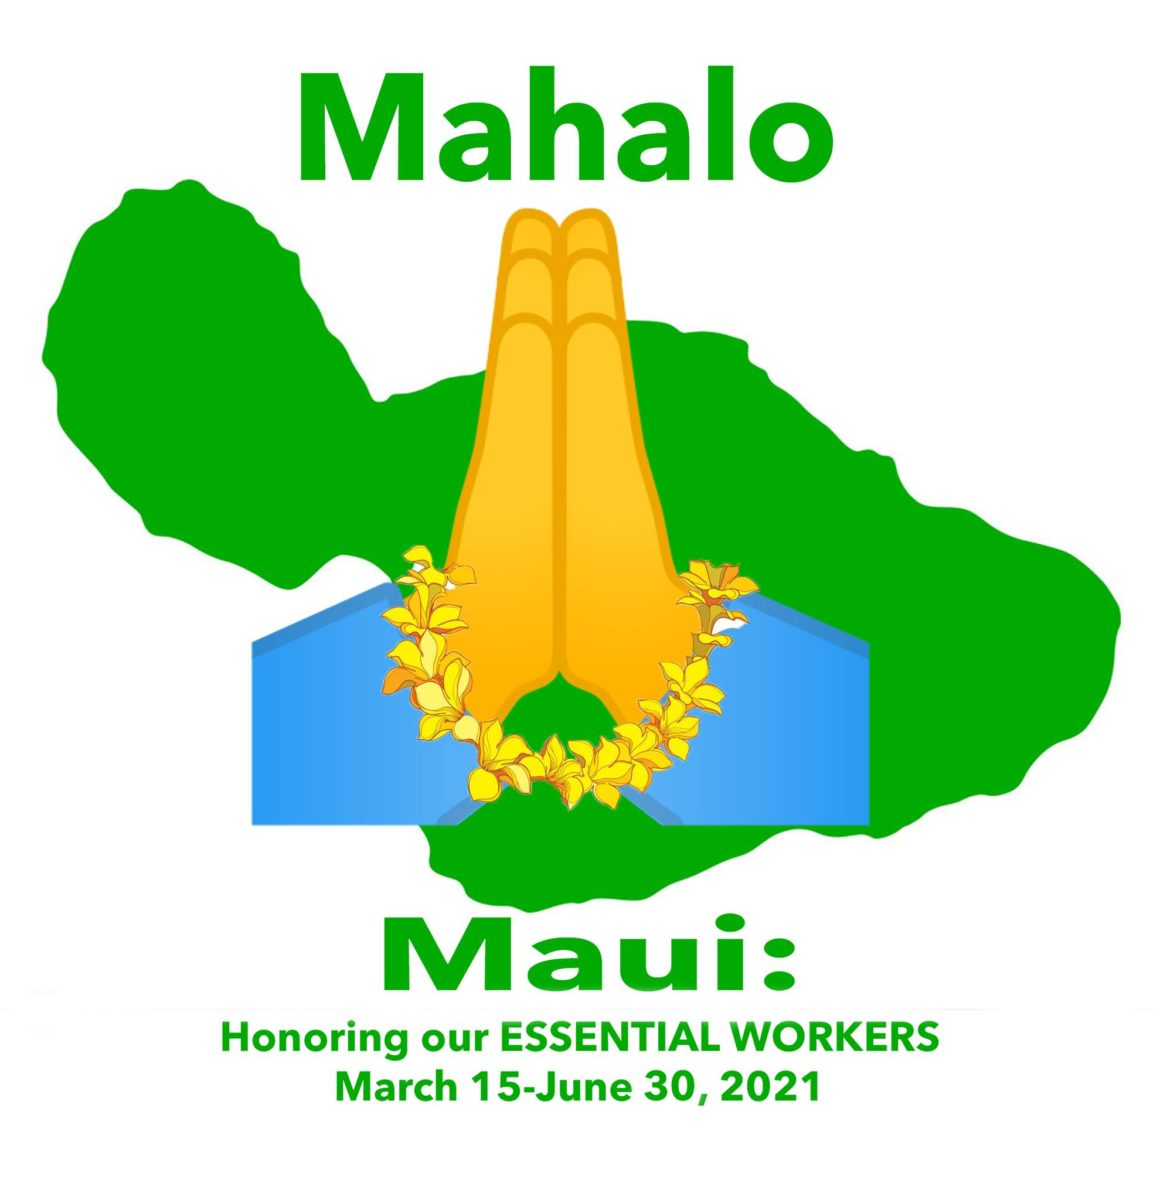 Mahalo Maui logo: Honoring our ESSENTIAL WORKERS March 15 - June 30, 2021